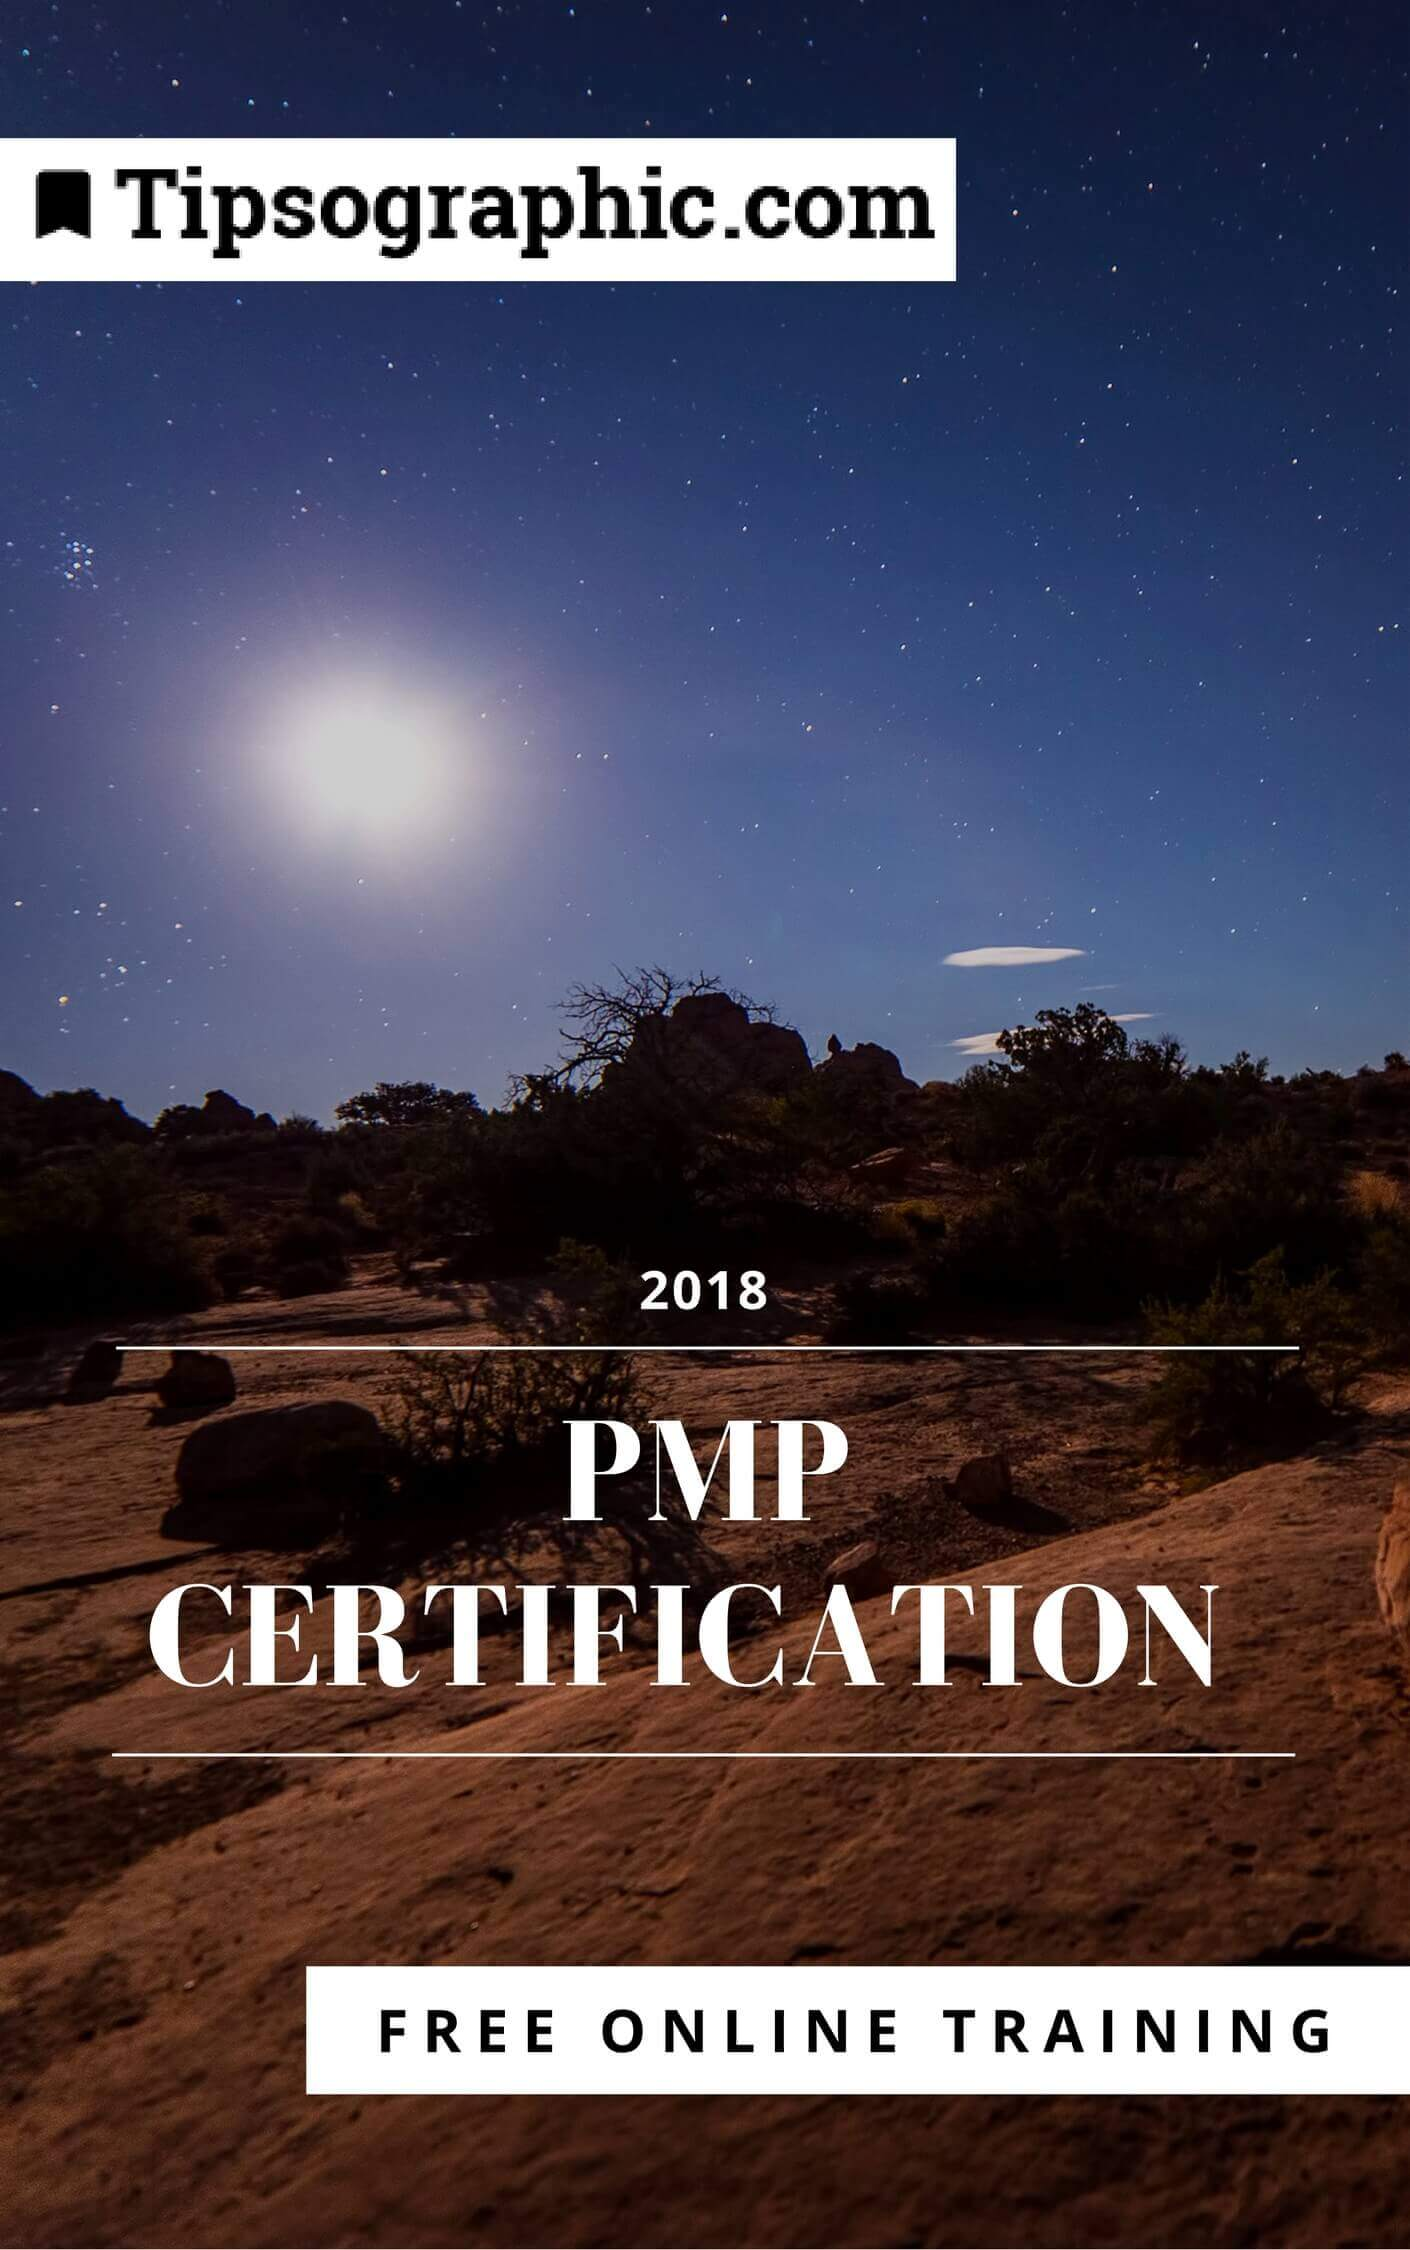 pmp certification 2018 free online training tipsographic